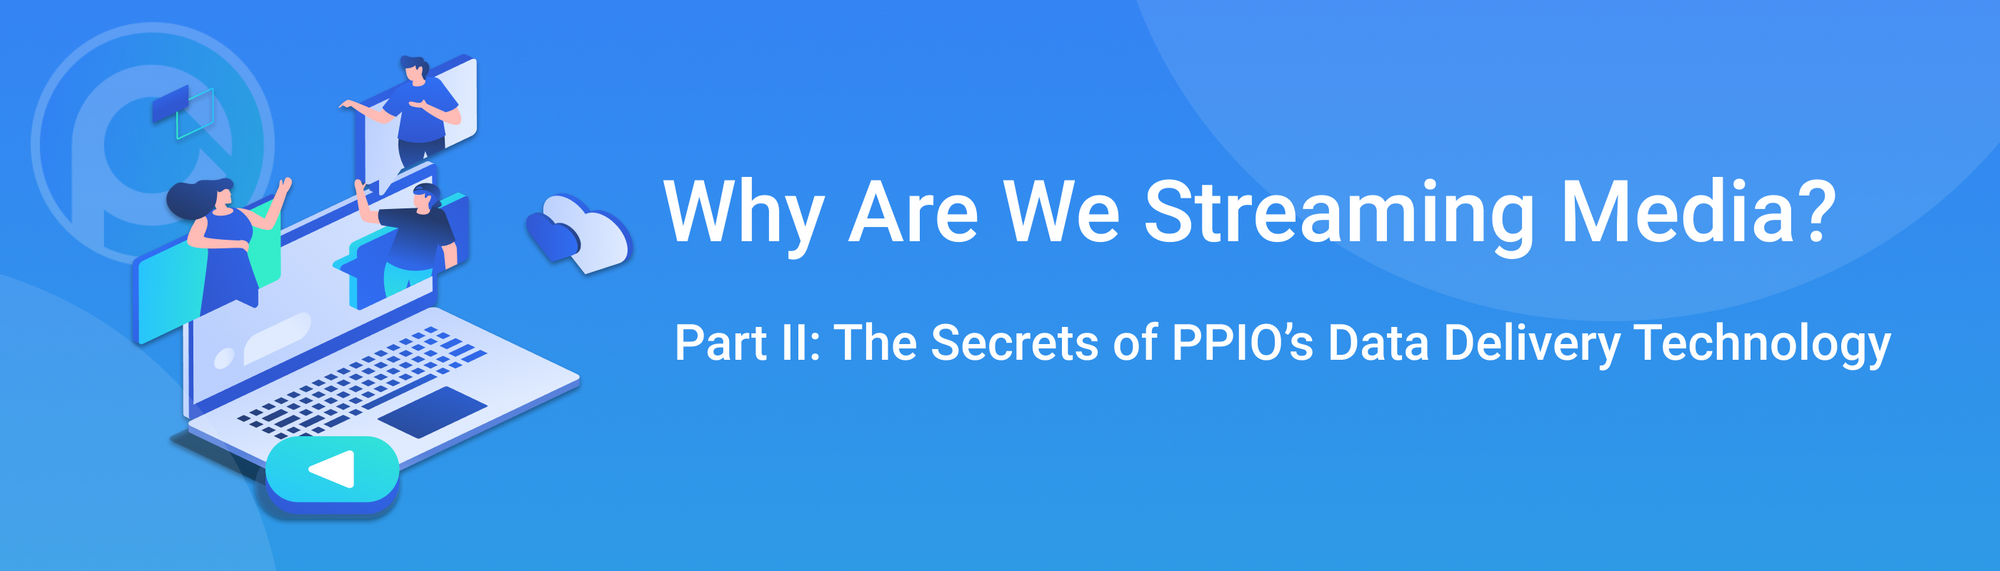 Why We're Streaming Media? Part II: The Secrets of PPIO's Data Delivery Technology